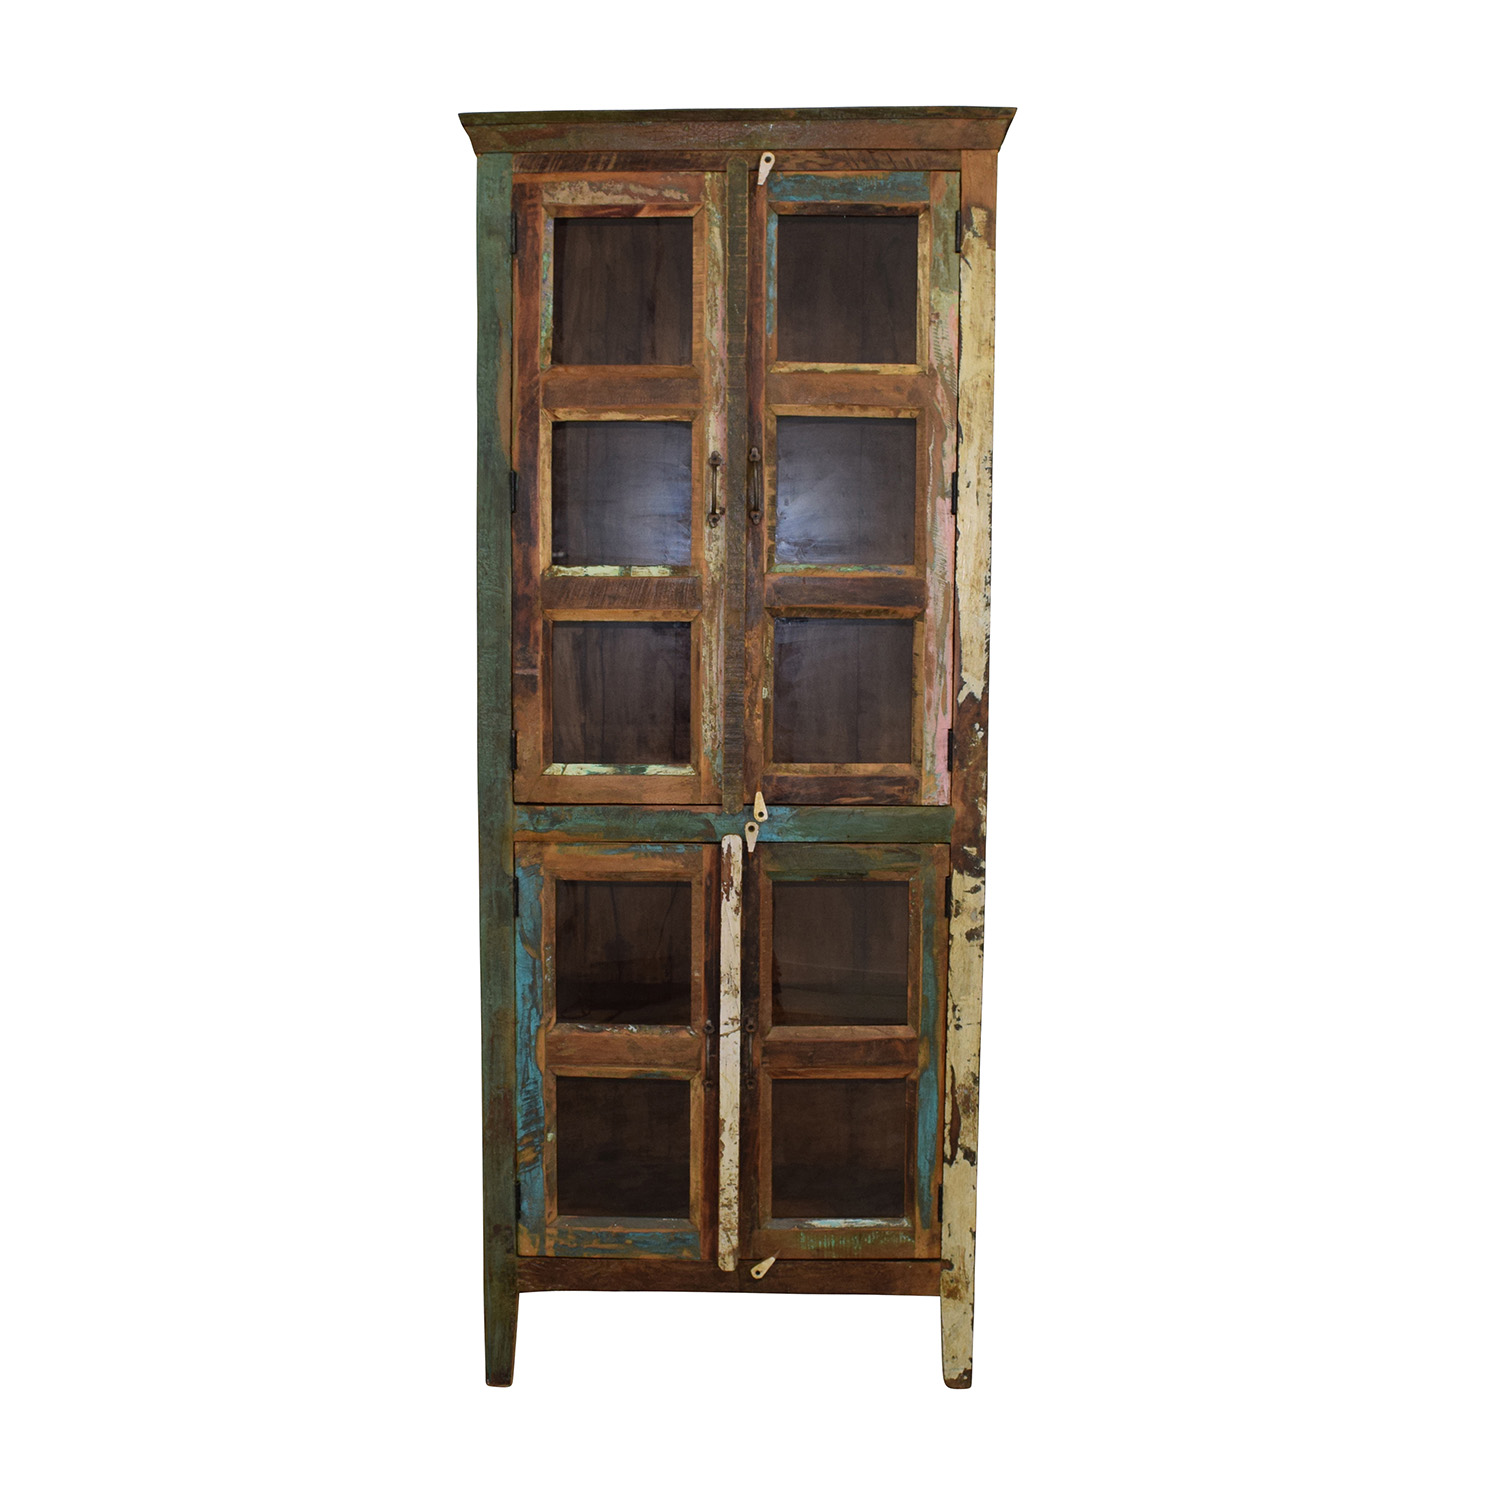 Furnishare - Buy and Sell Used Furniture